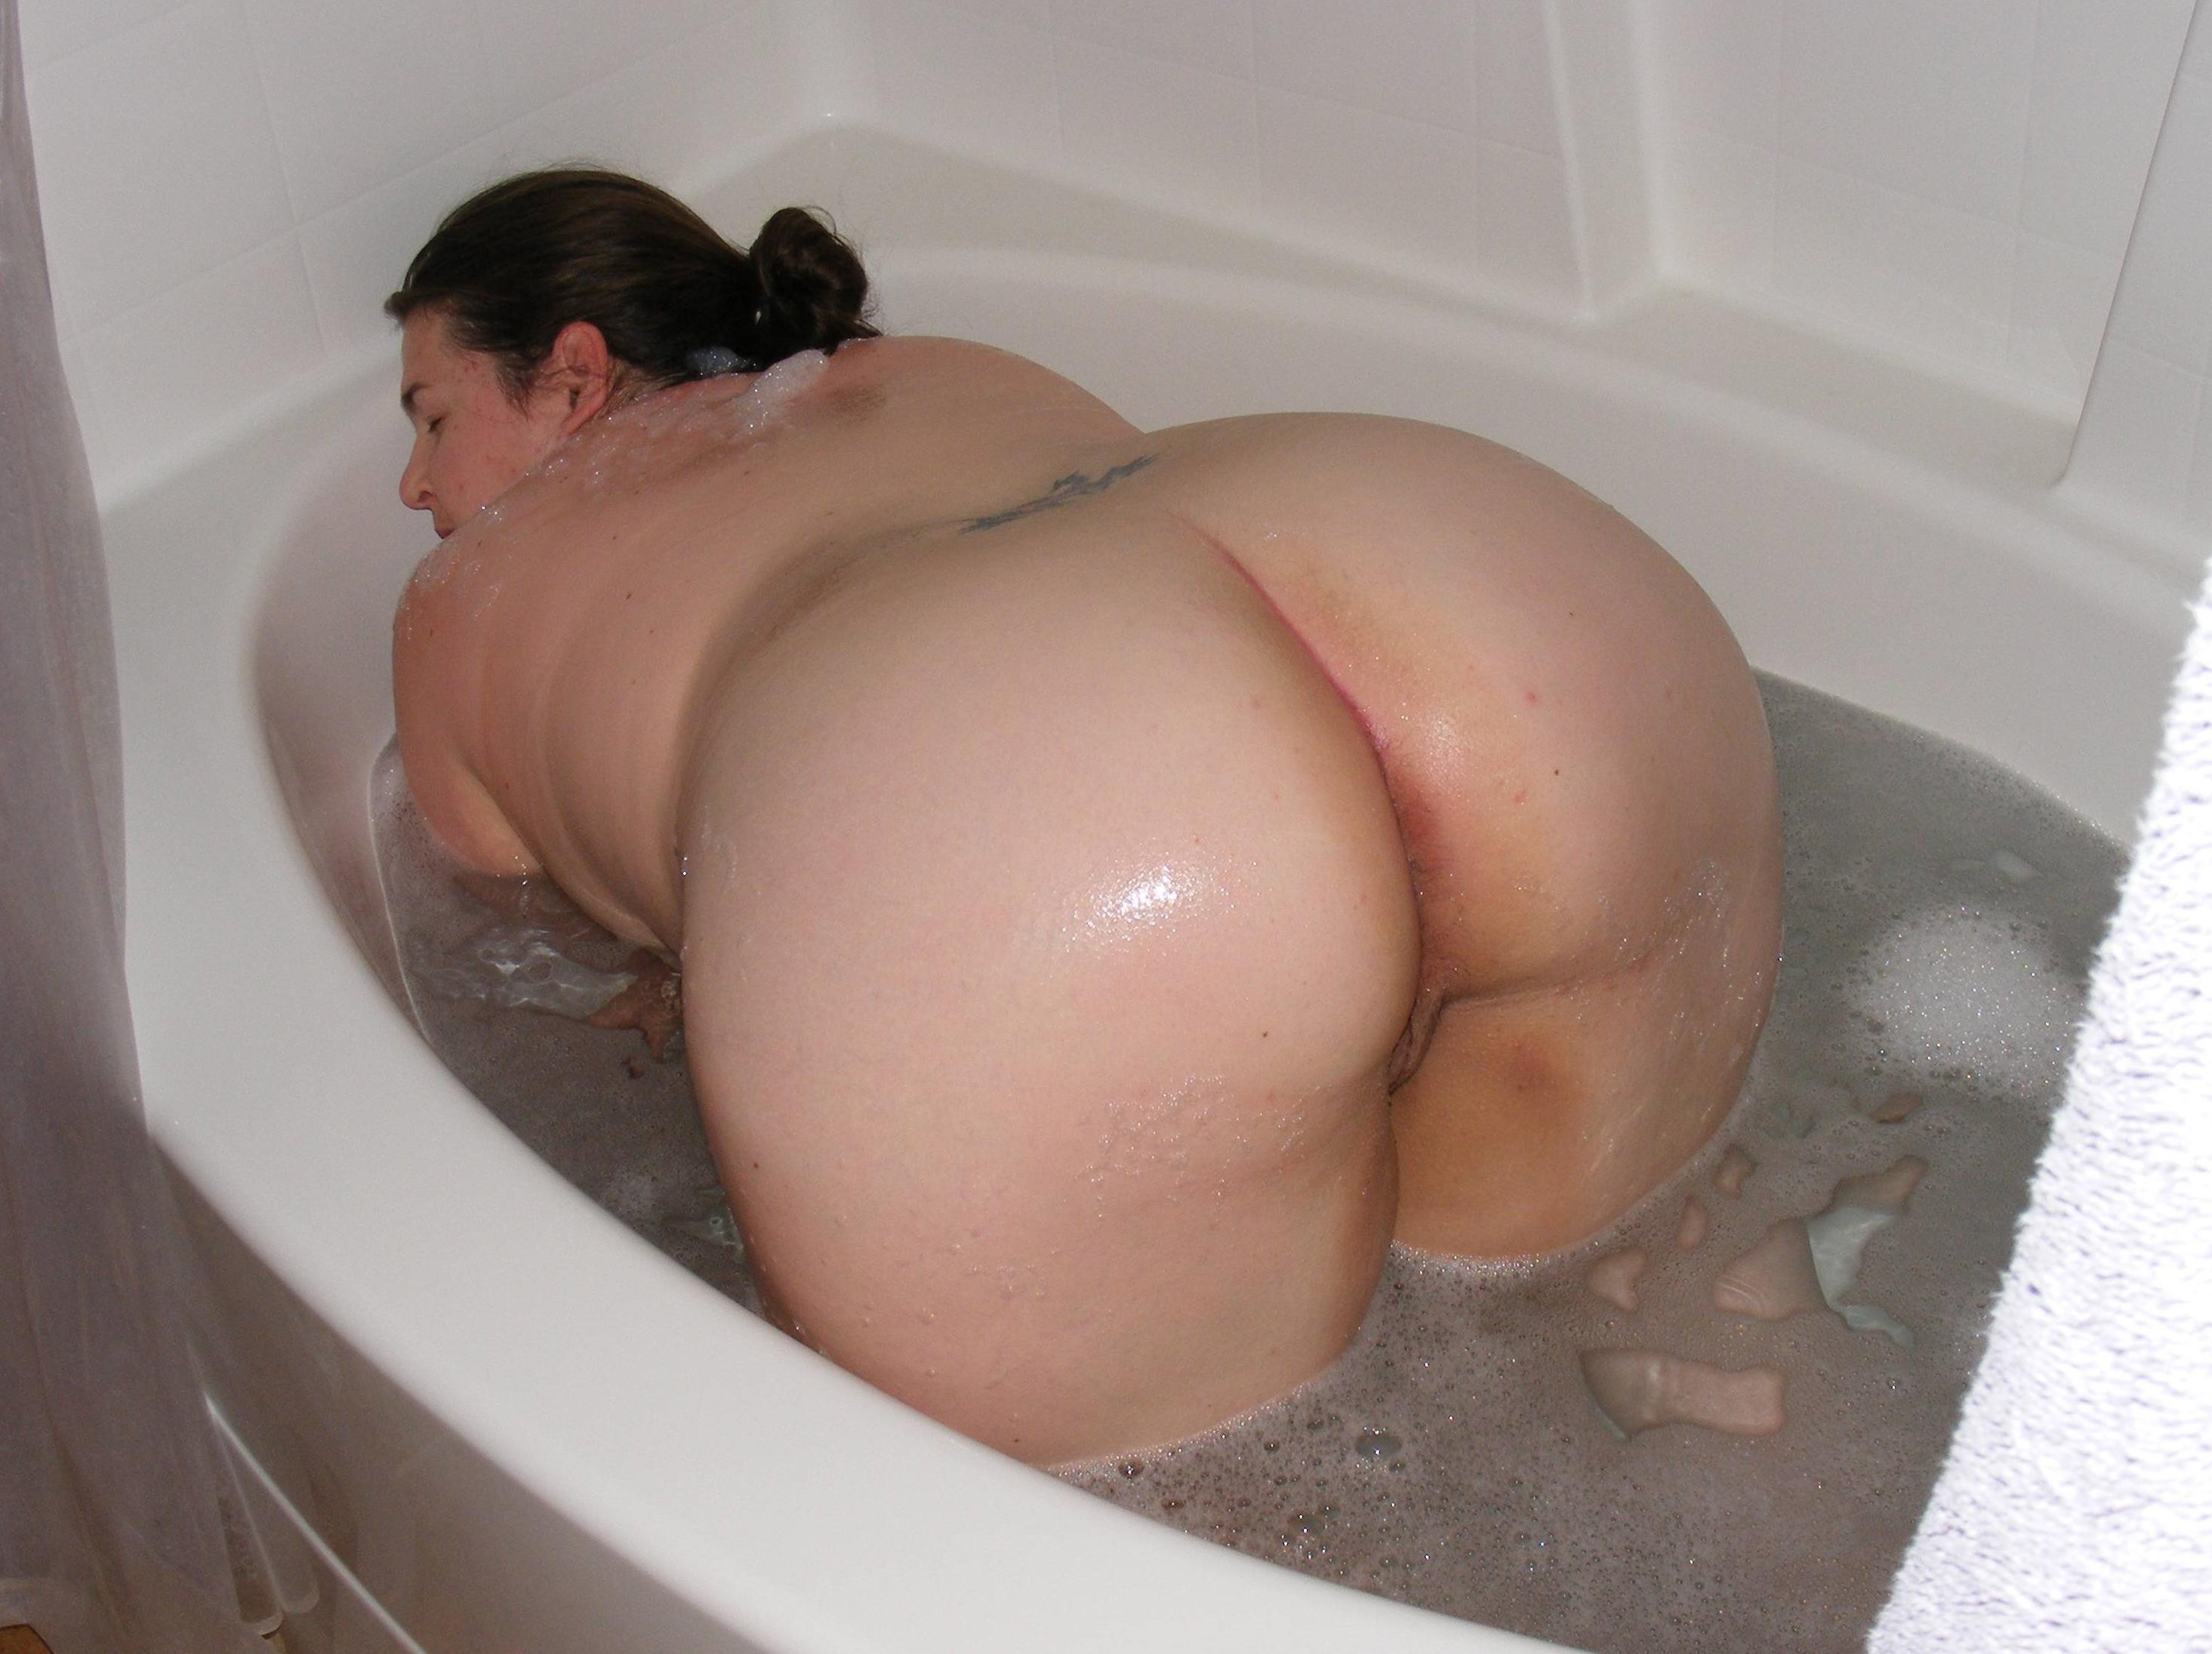 Big ass milf taped in the shower when touching her